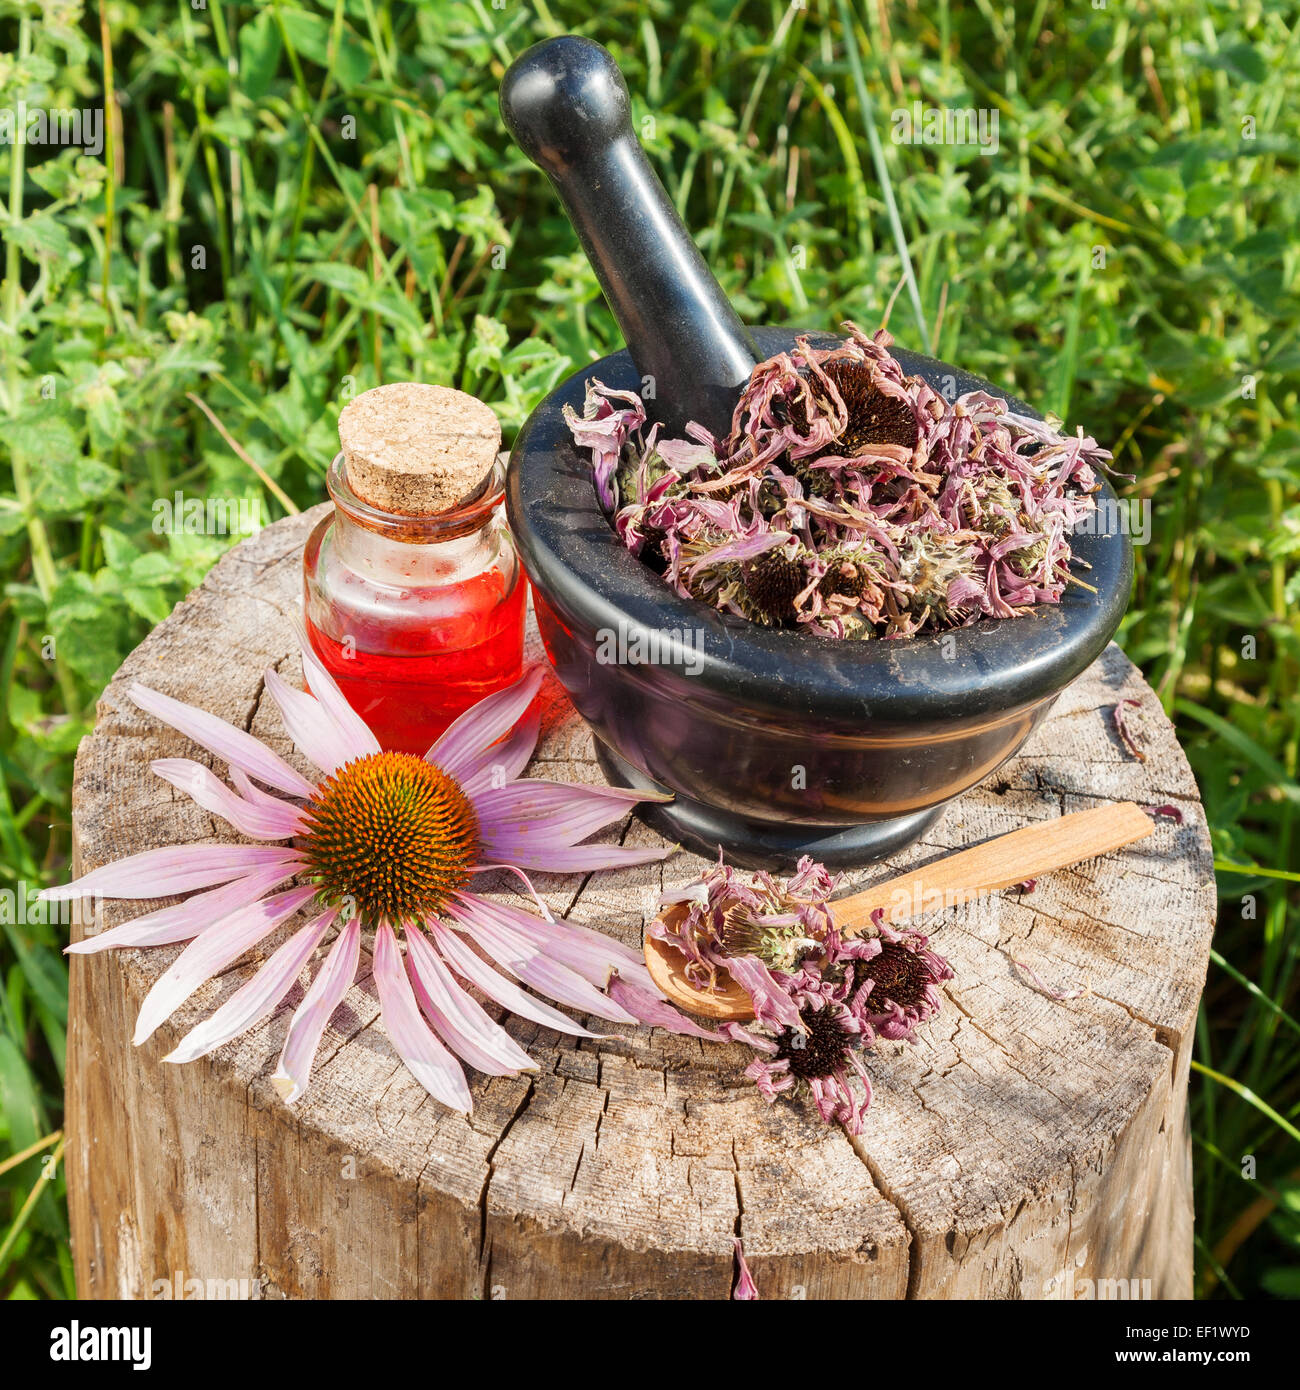 Cuisines Vial Black Mortar With Dried Coneflowers And Vial With Essential Oil In